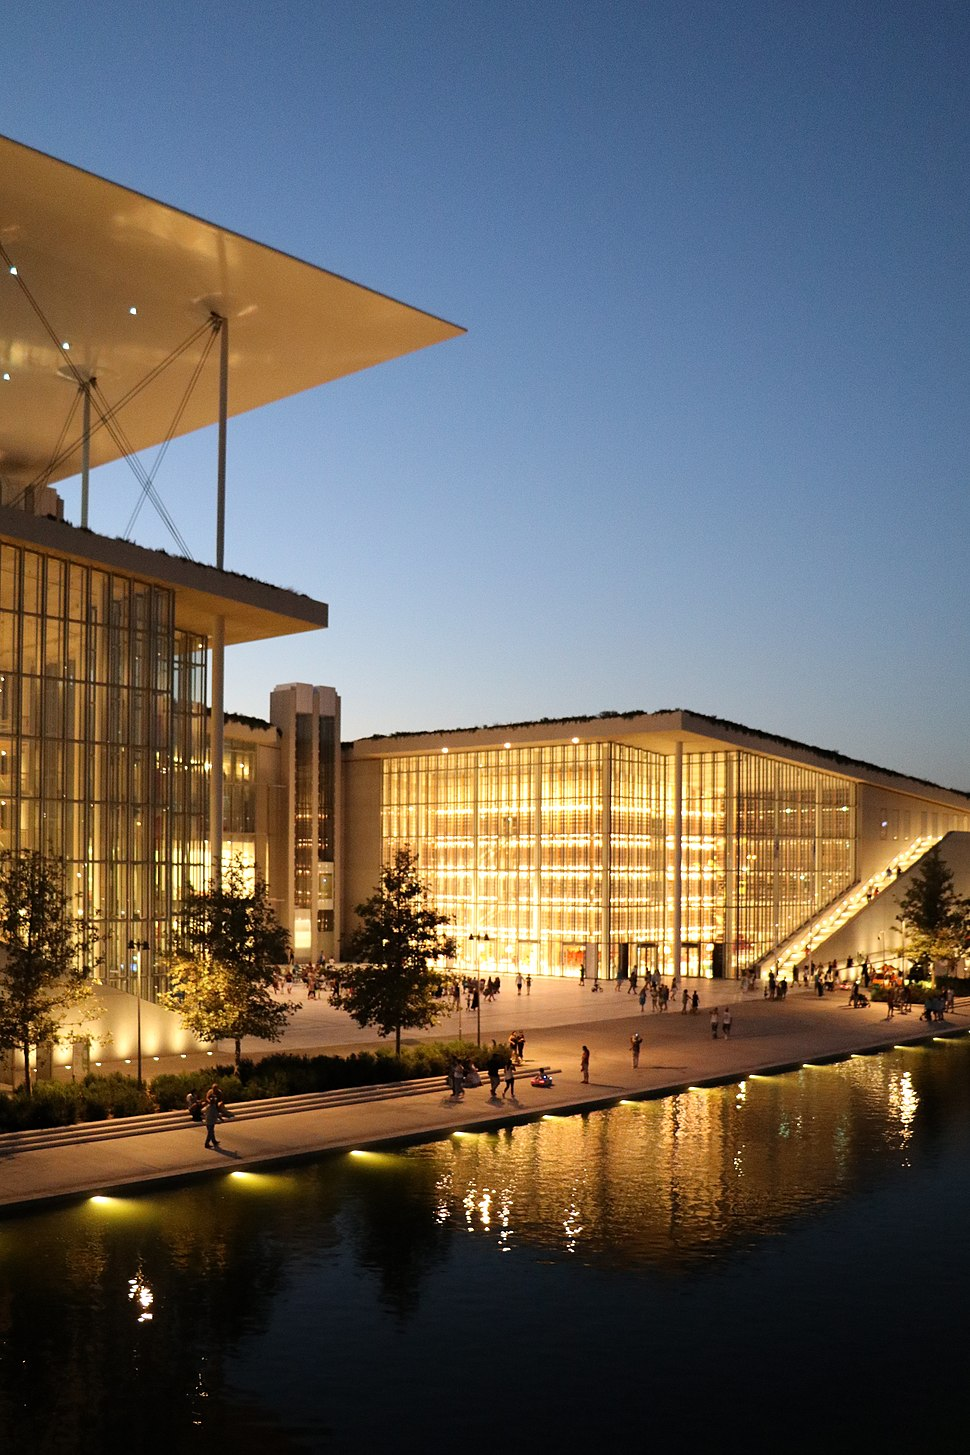 SNFCC at night